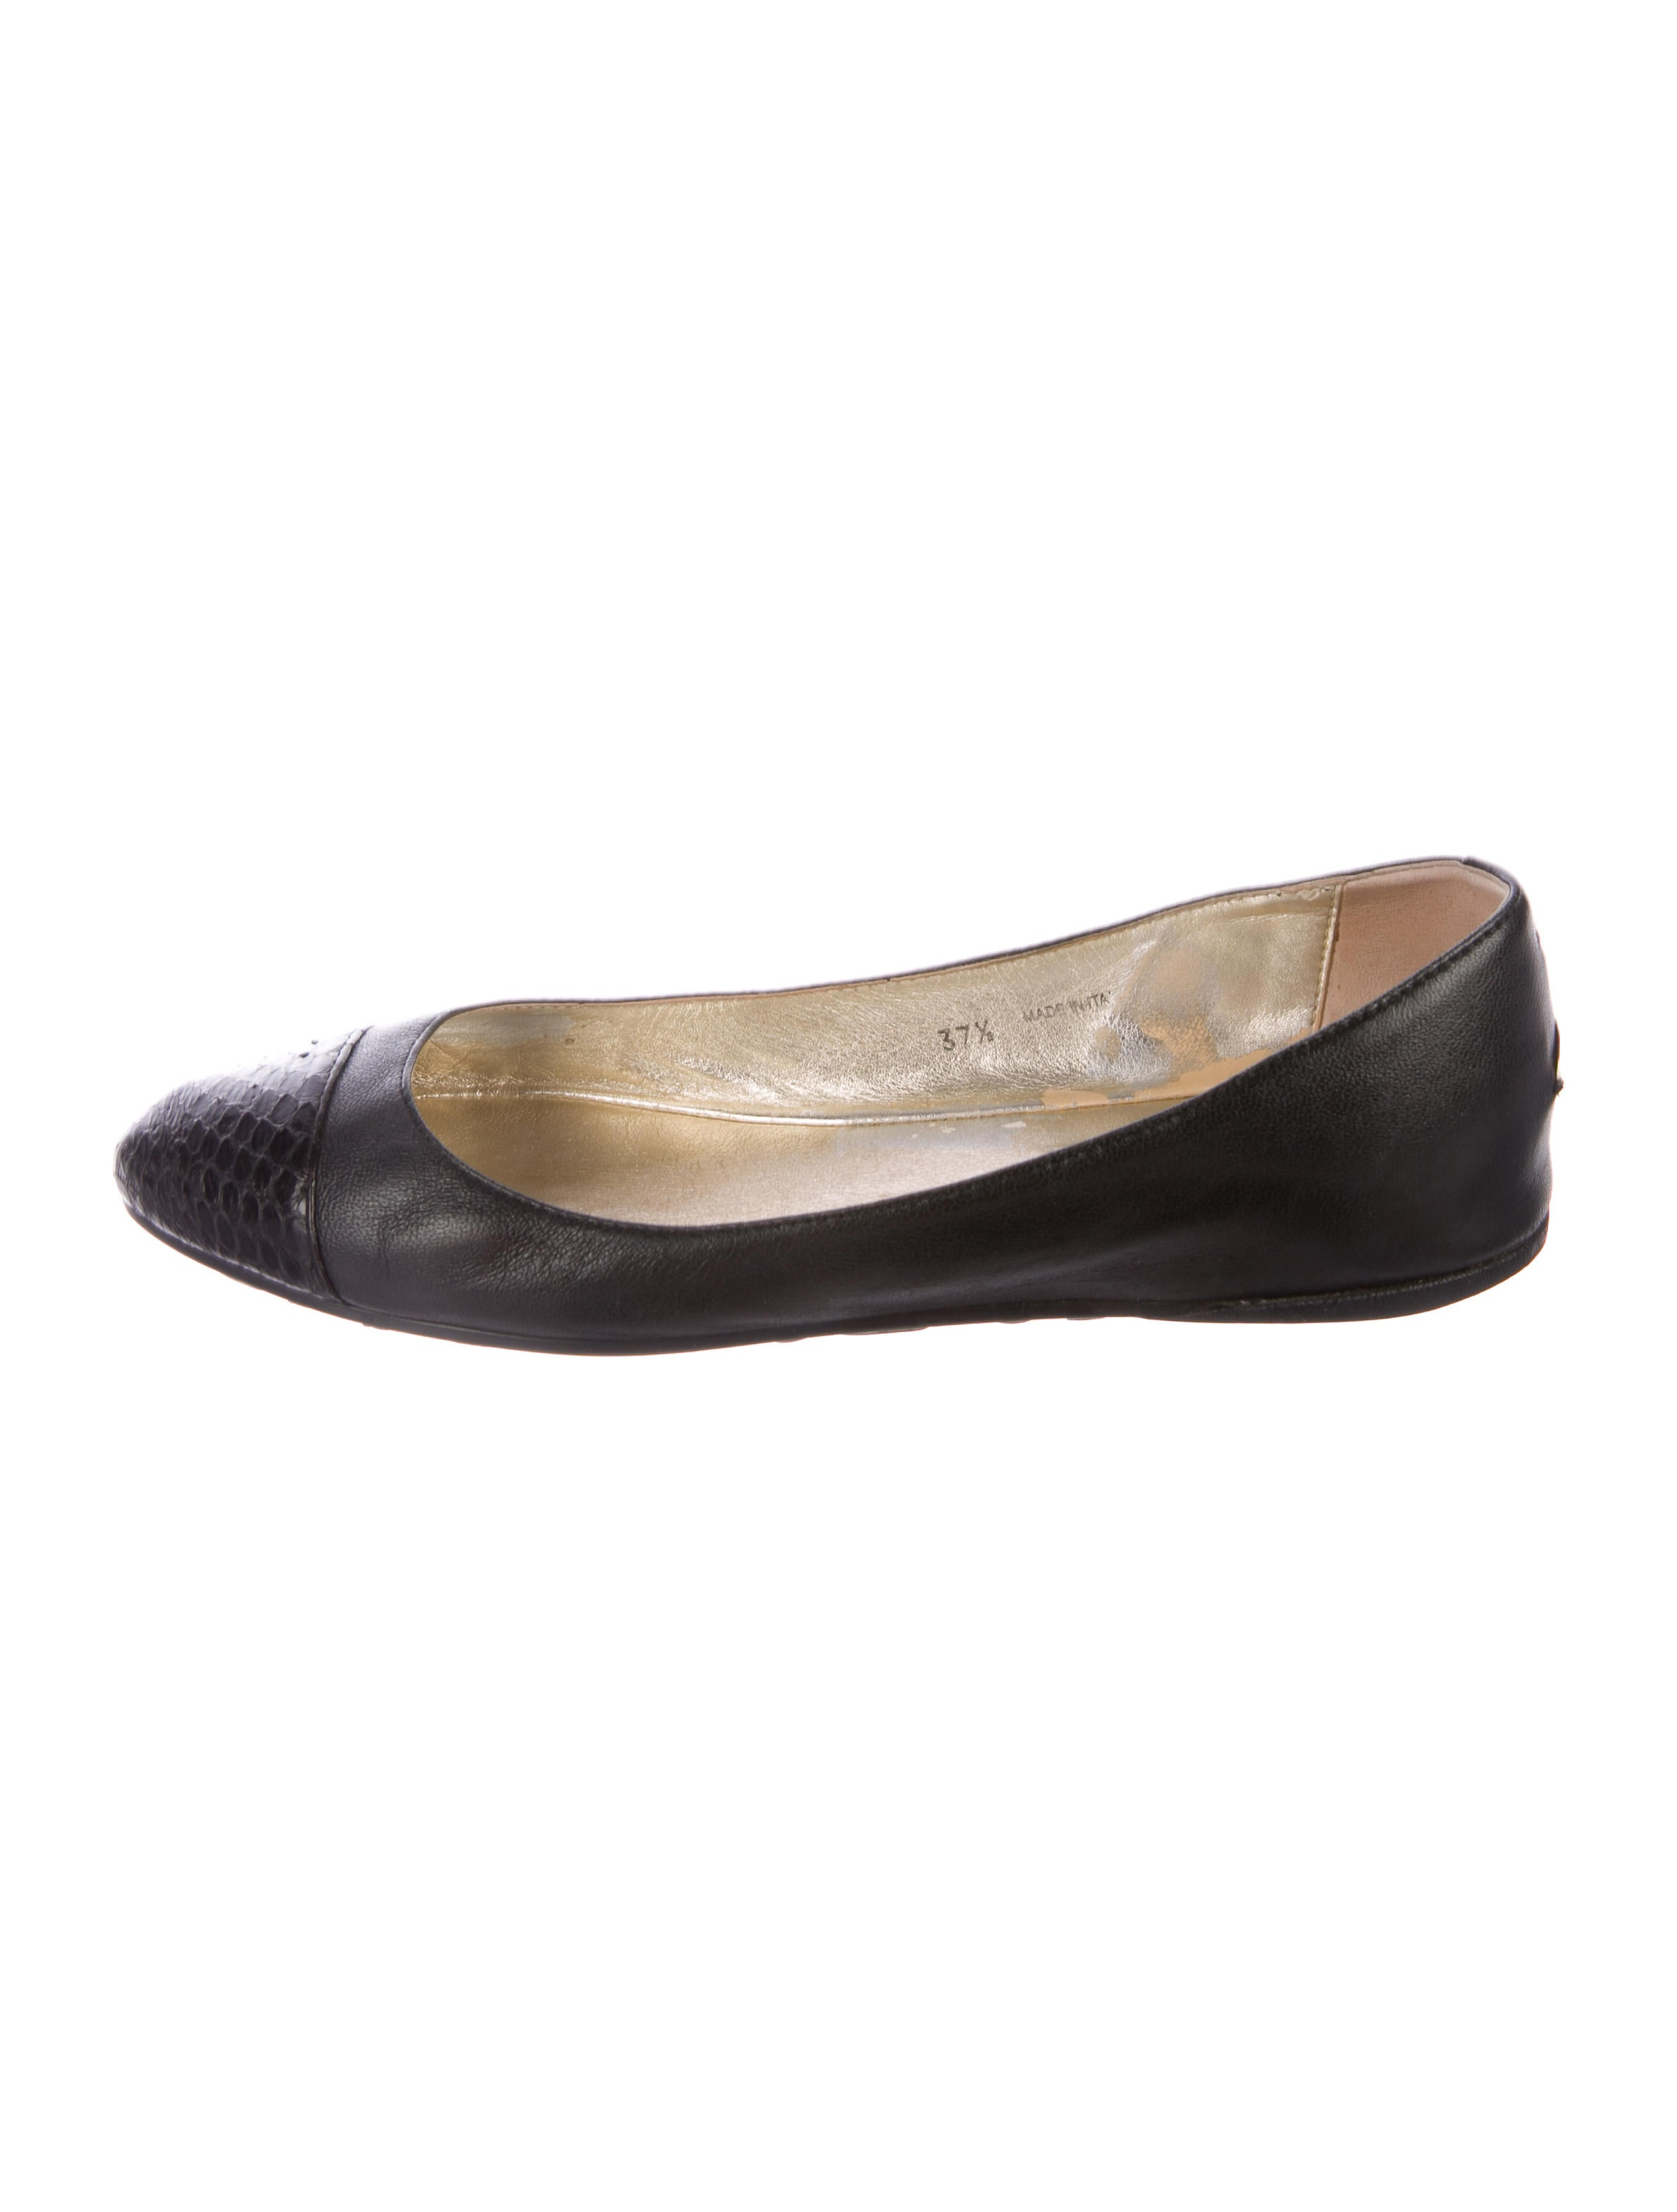 Jimmy Choo Leather Snakeskin-Accented Flats discount free shipping 2015 online sale low price fee shipping sale with mastercard top quality cheap price gV8SesHn2